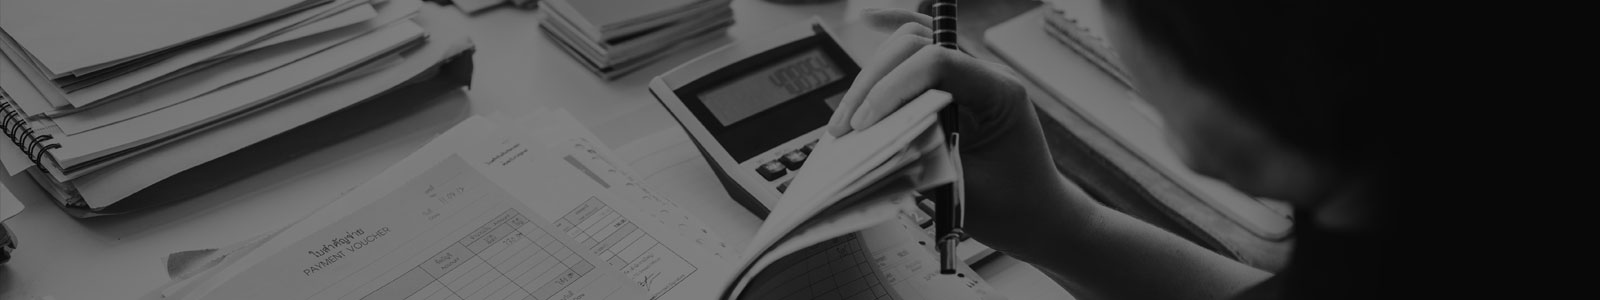 Outsourcing Payroll Processing Services